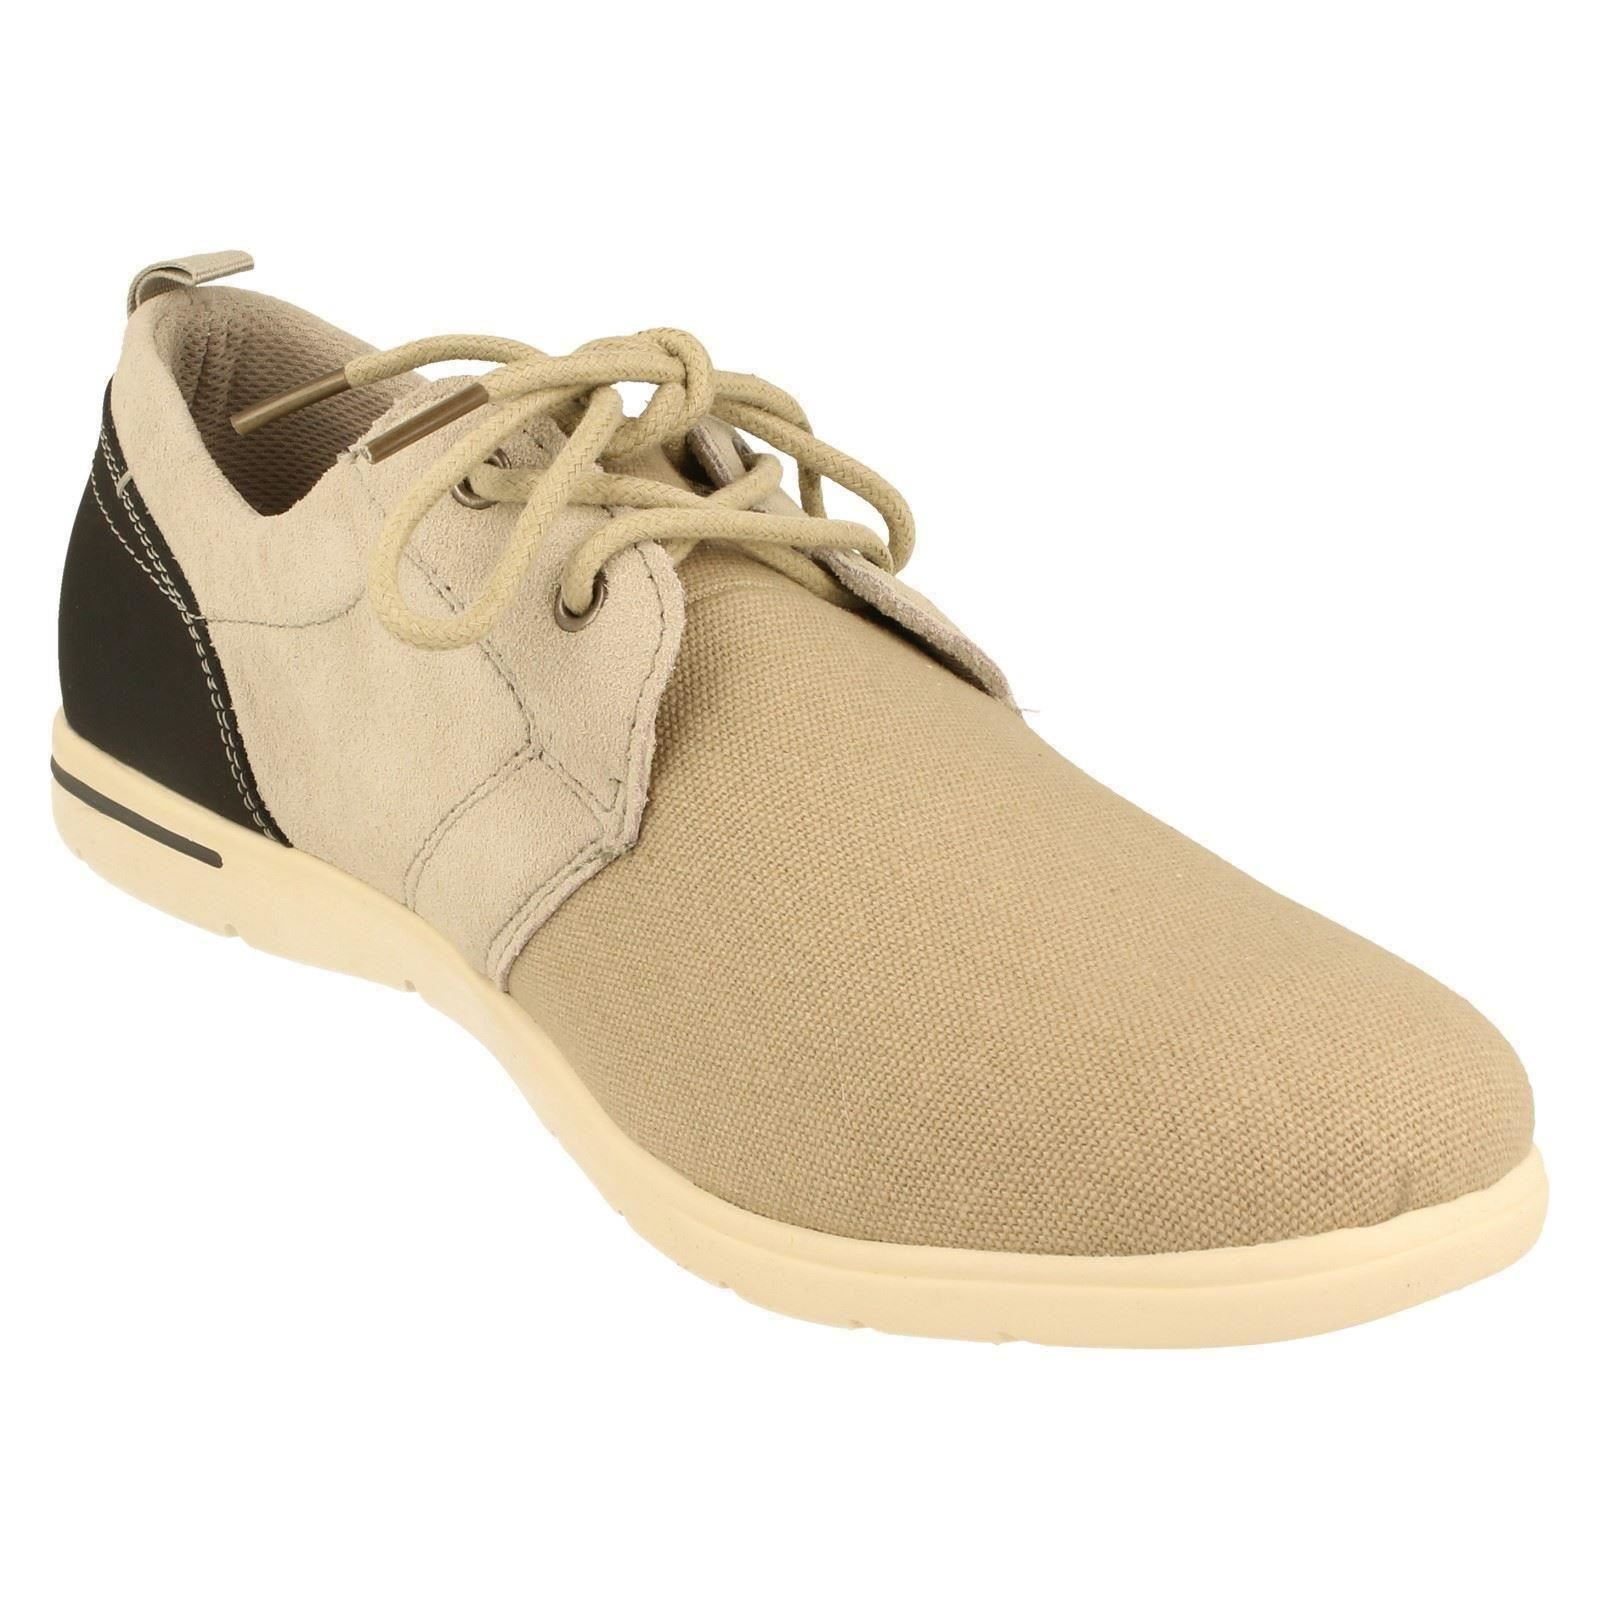 Combi Shoes Style Canvas Liam Mens Padders Gray qxT776